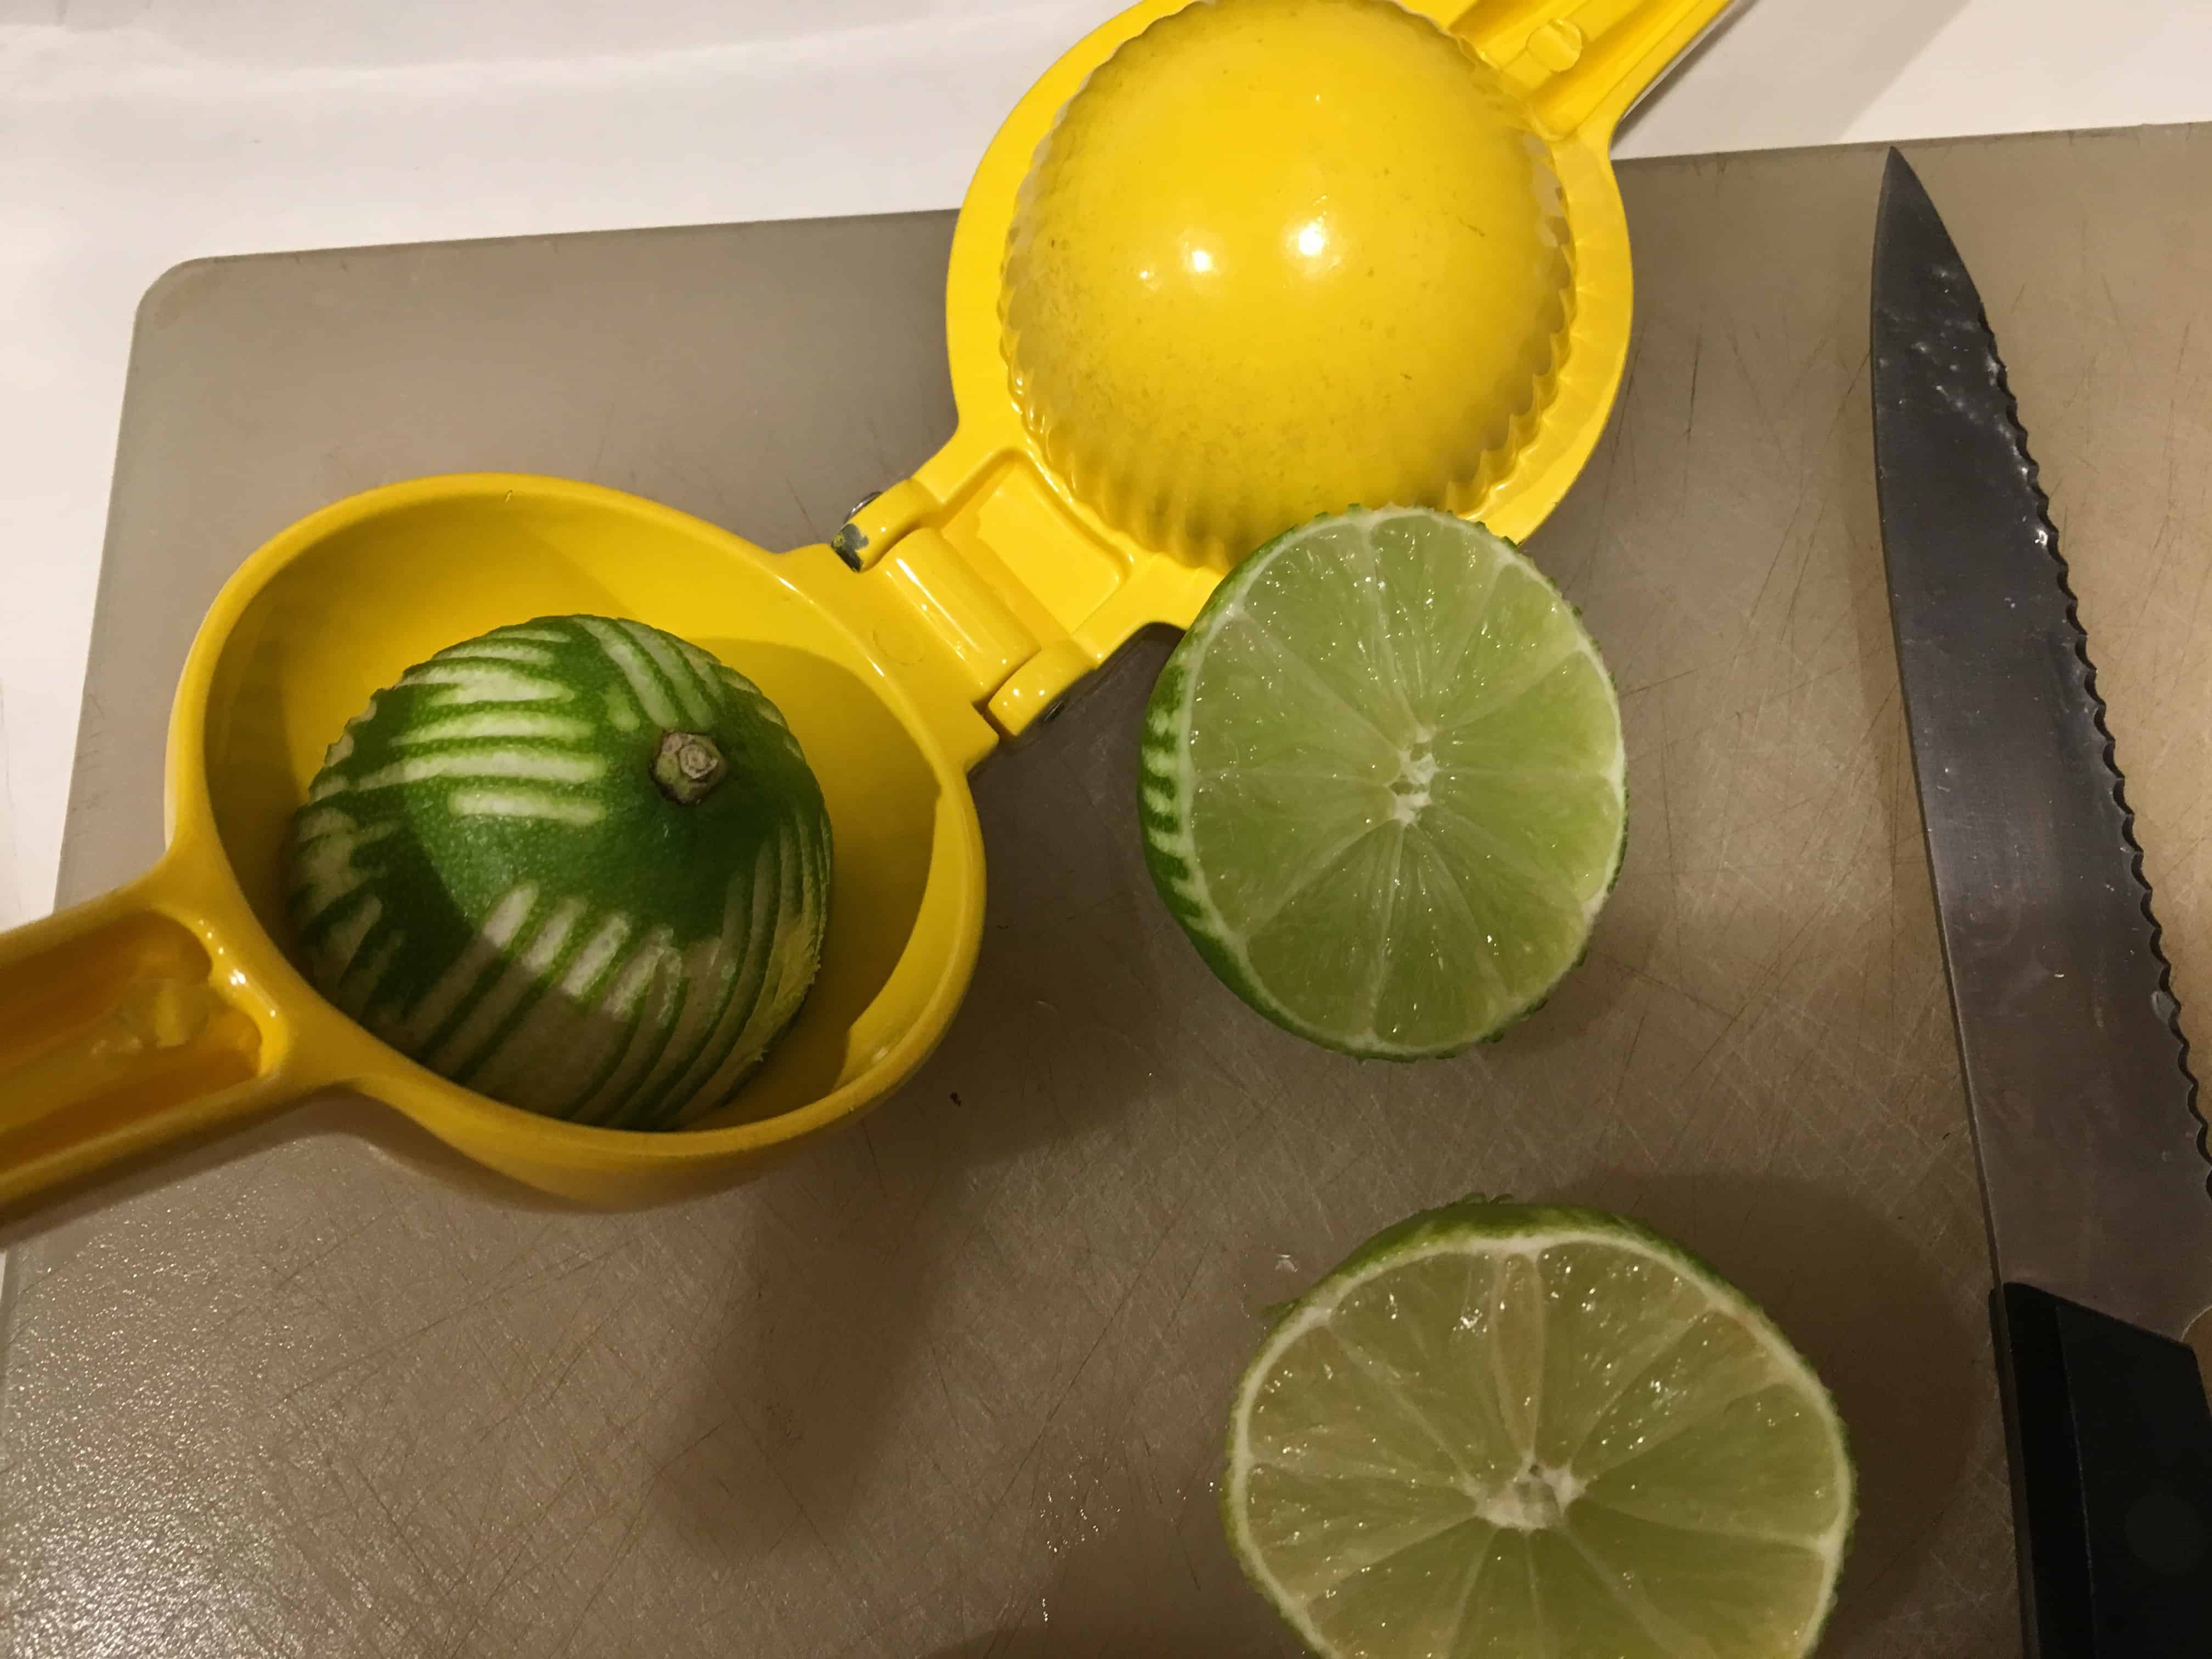 Zested limes.